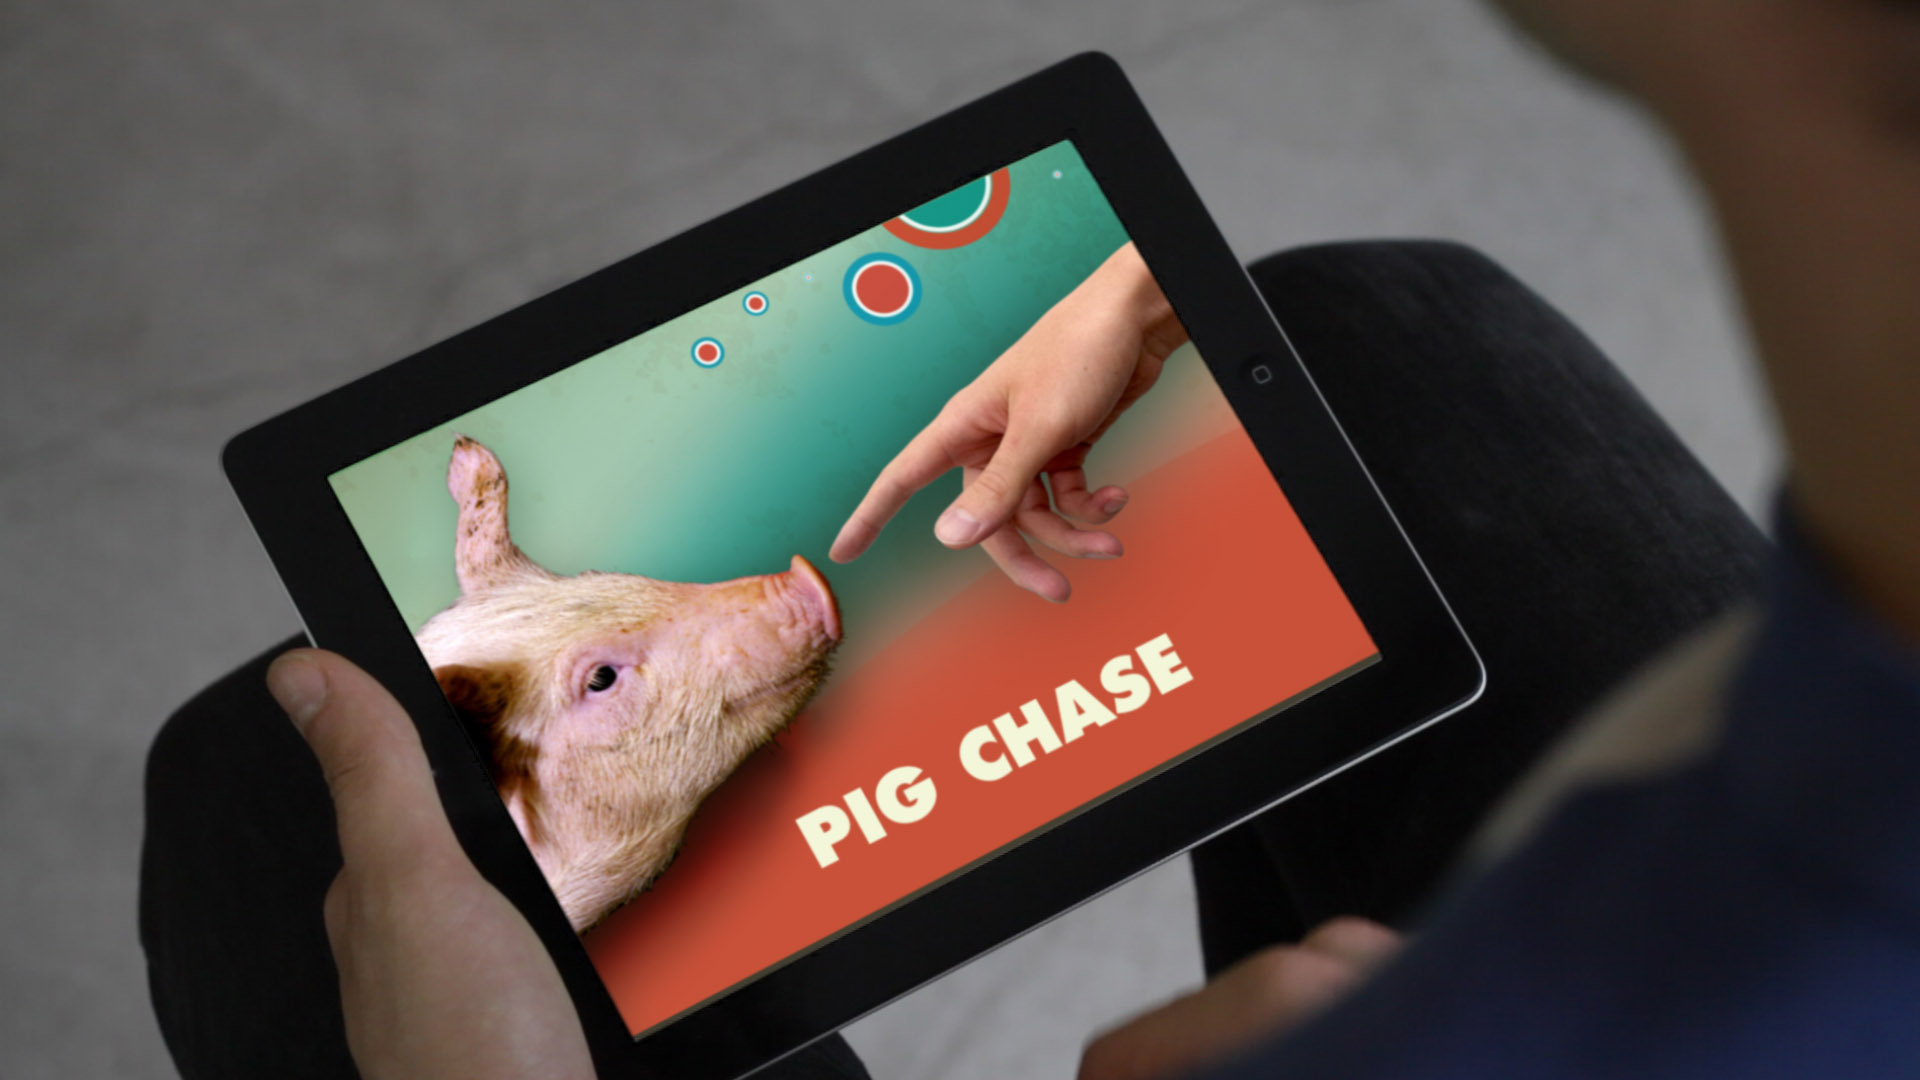 Pig Chase opening screen